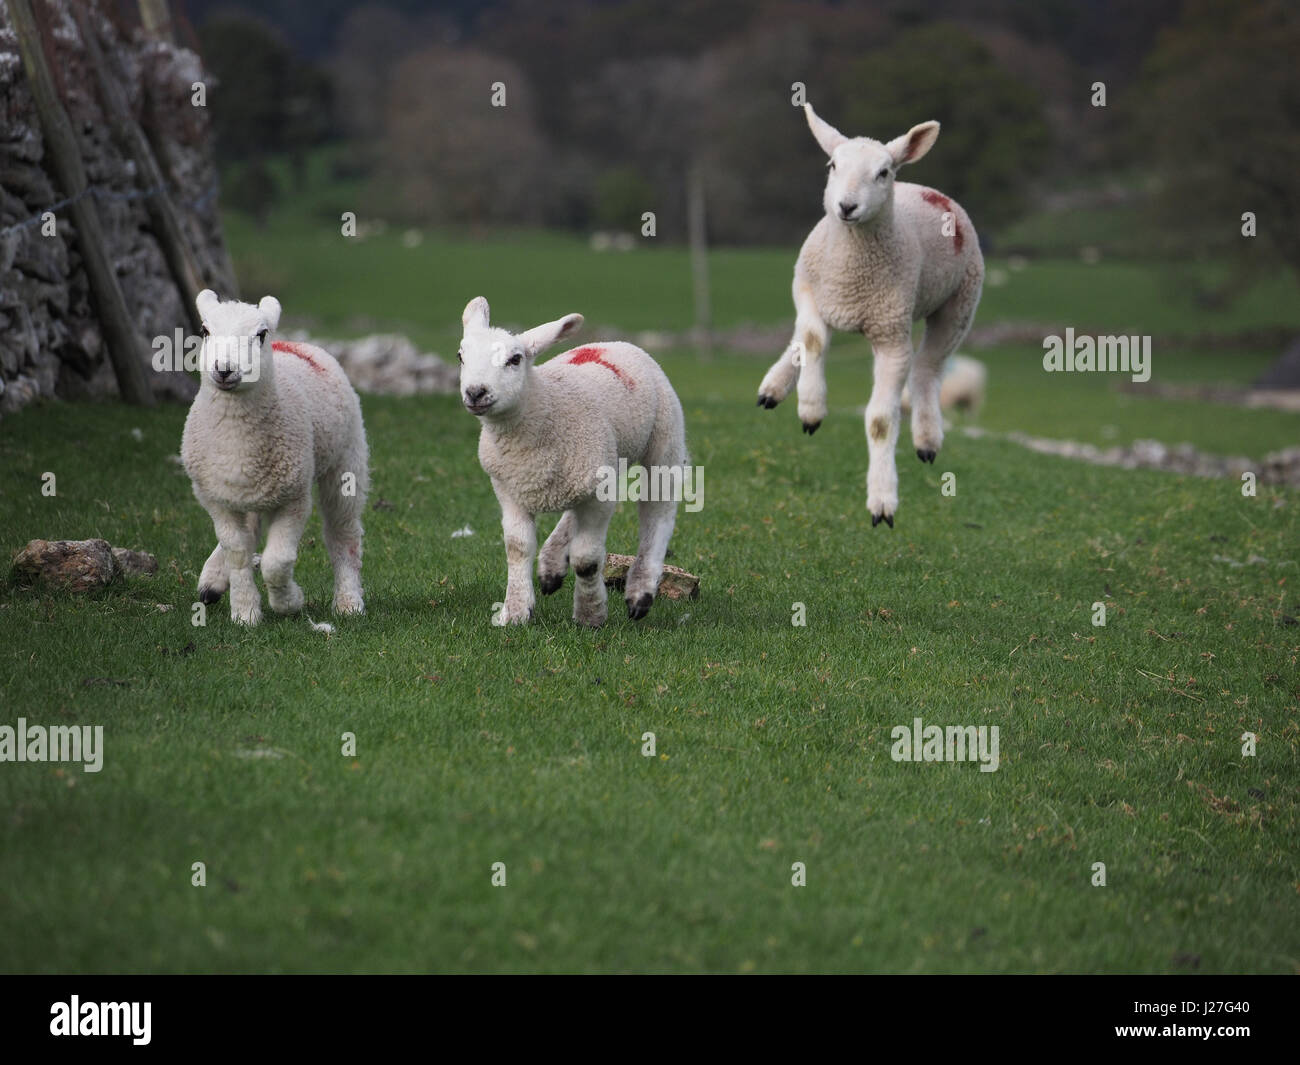 Cumbria, UK. 25th Apr, 2017. Overcast day in Cumbria. Three lambs frolicking in Cumbria despite the unseasonable - Stock Image